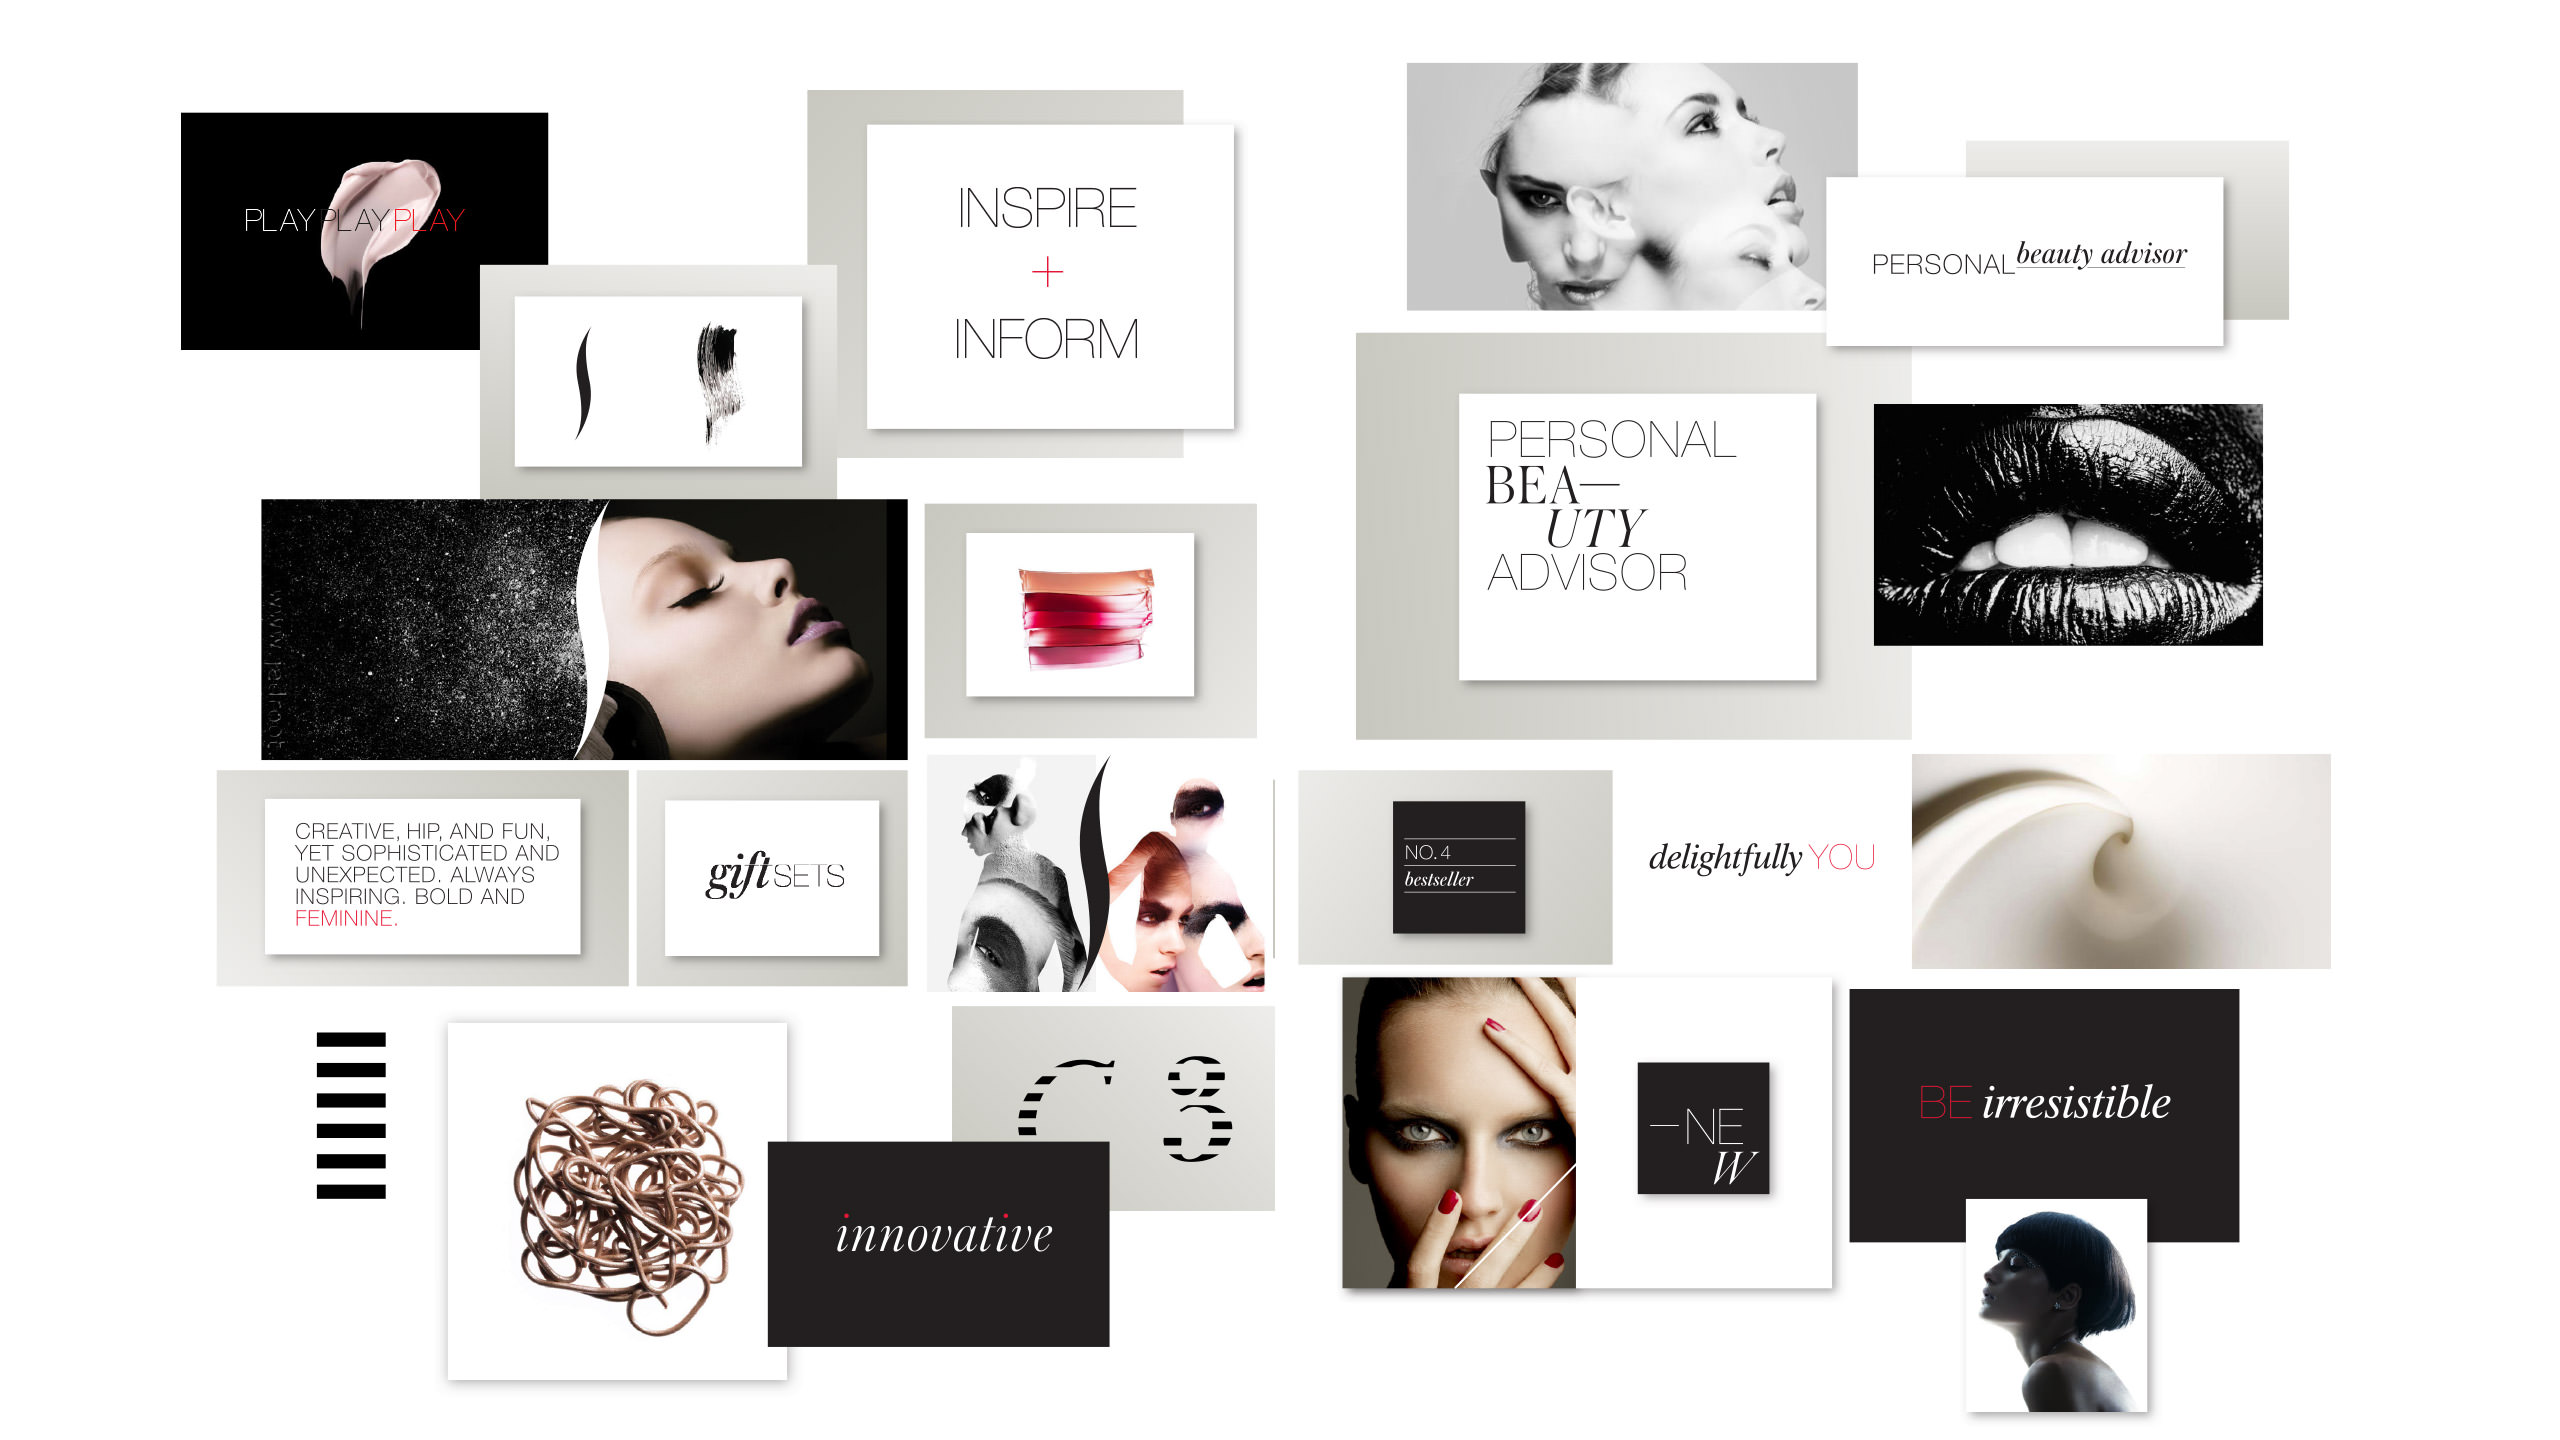 Sephora Retail Brand Collage of Inspire, Inform Campaign